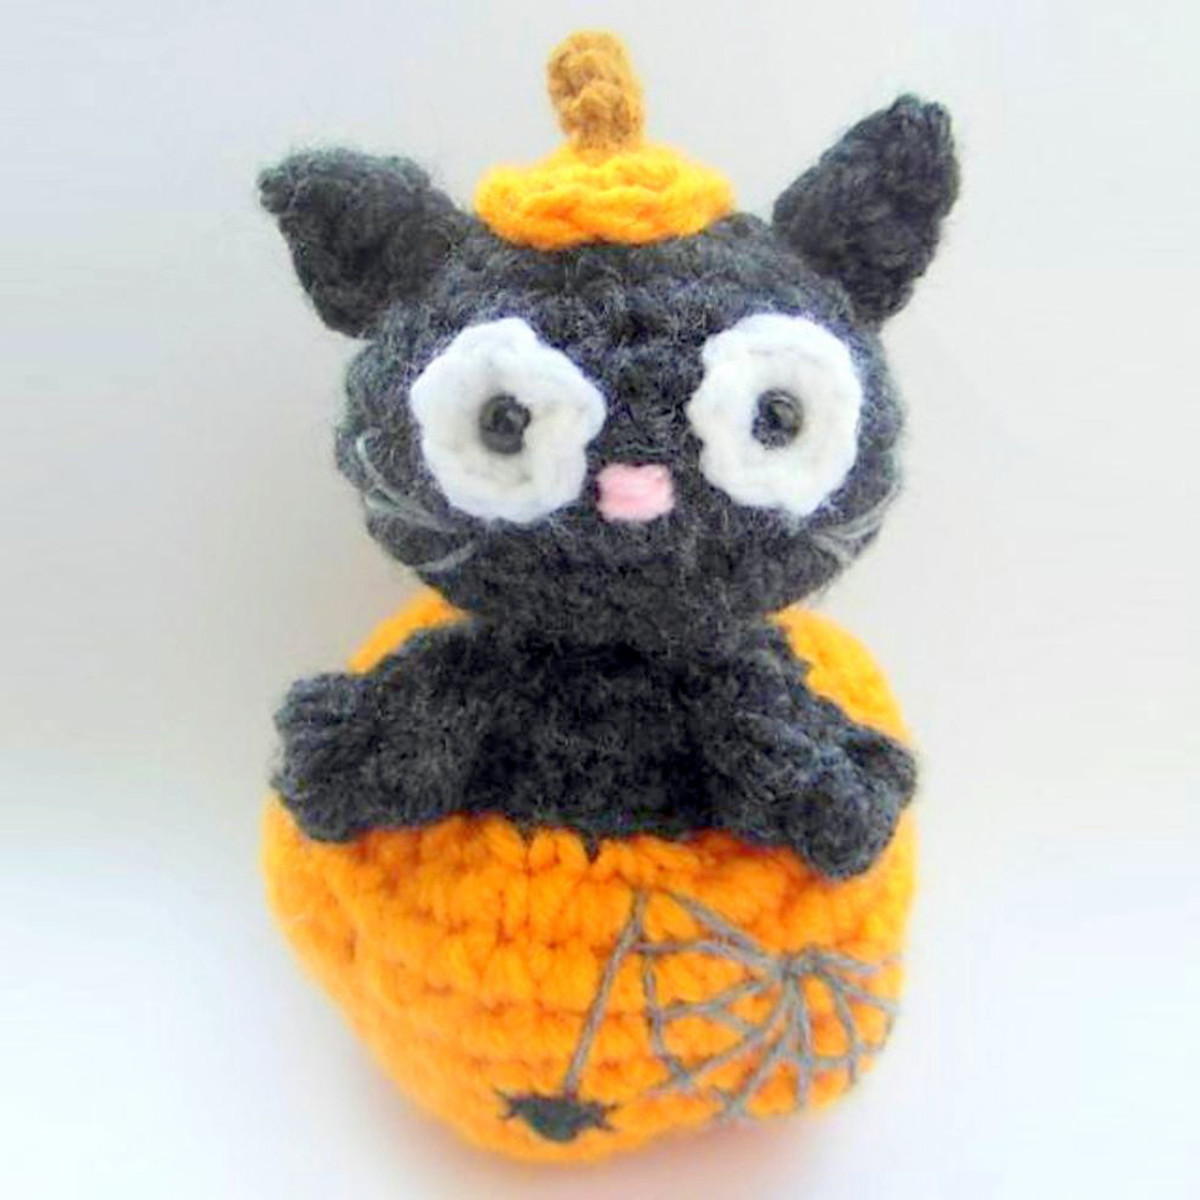 Halloween Skeleton Crochet Patterns! - AmVaBe Crochet | 520x520